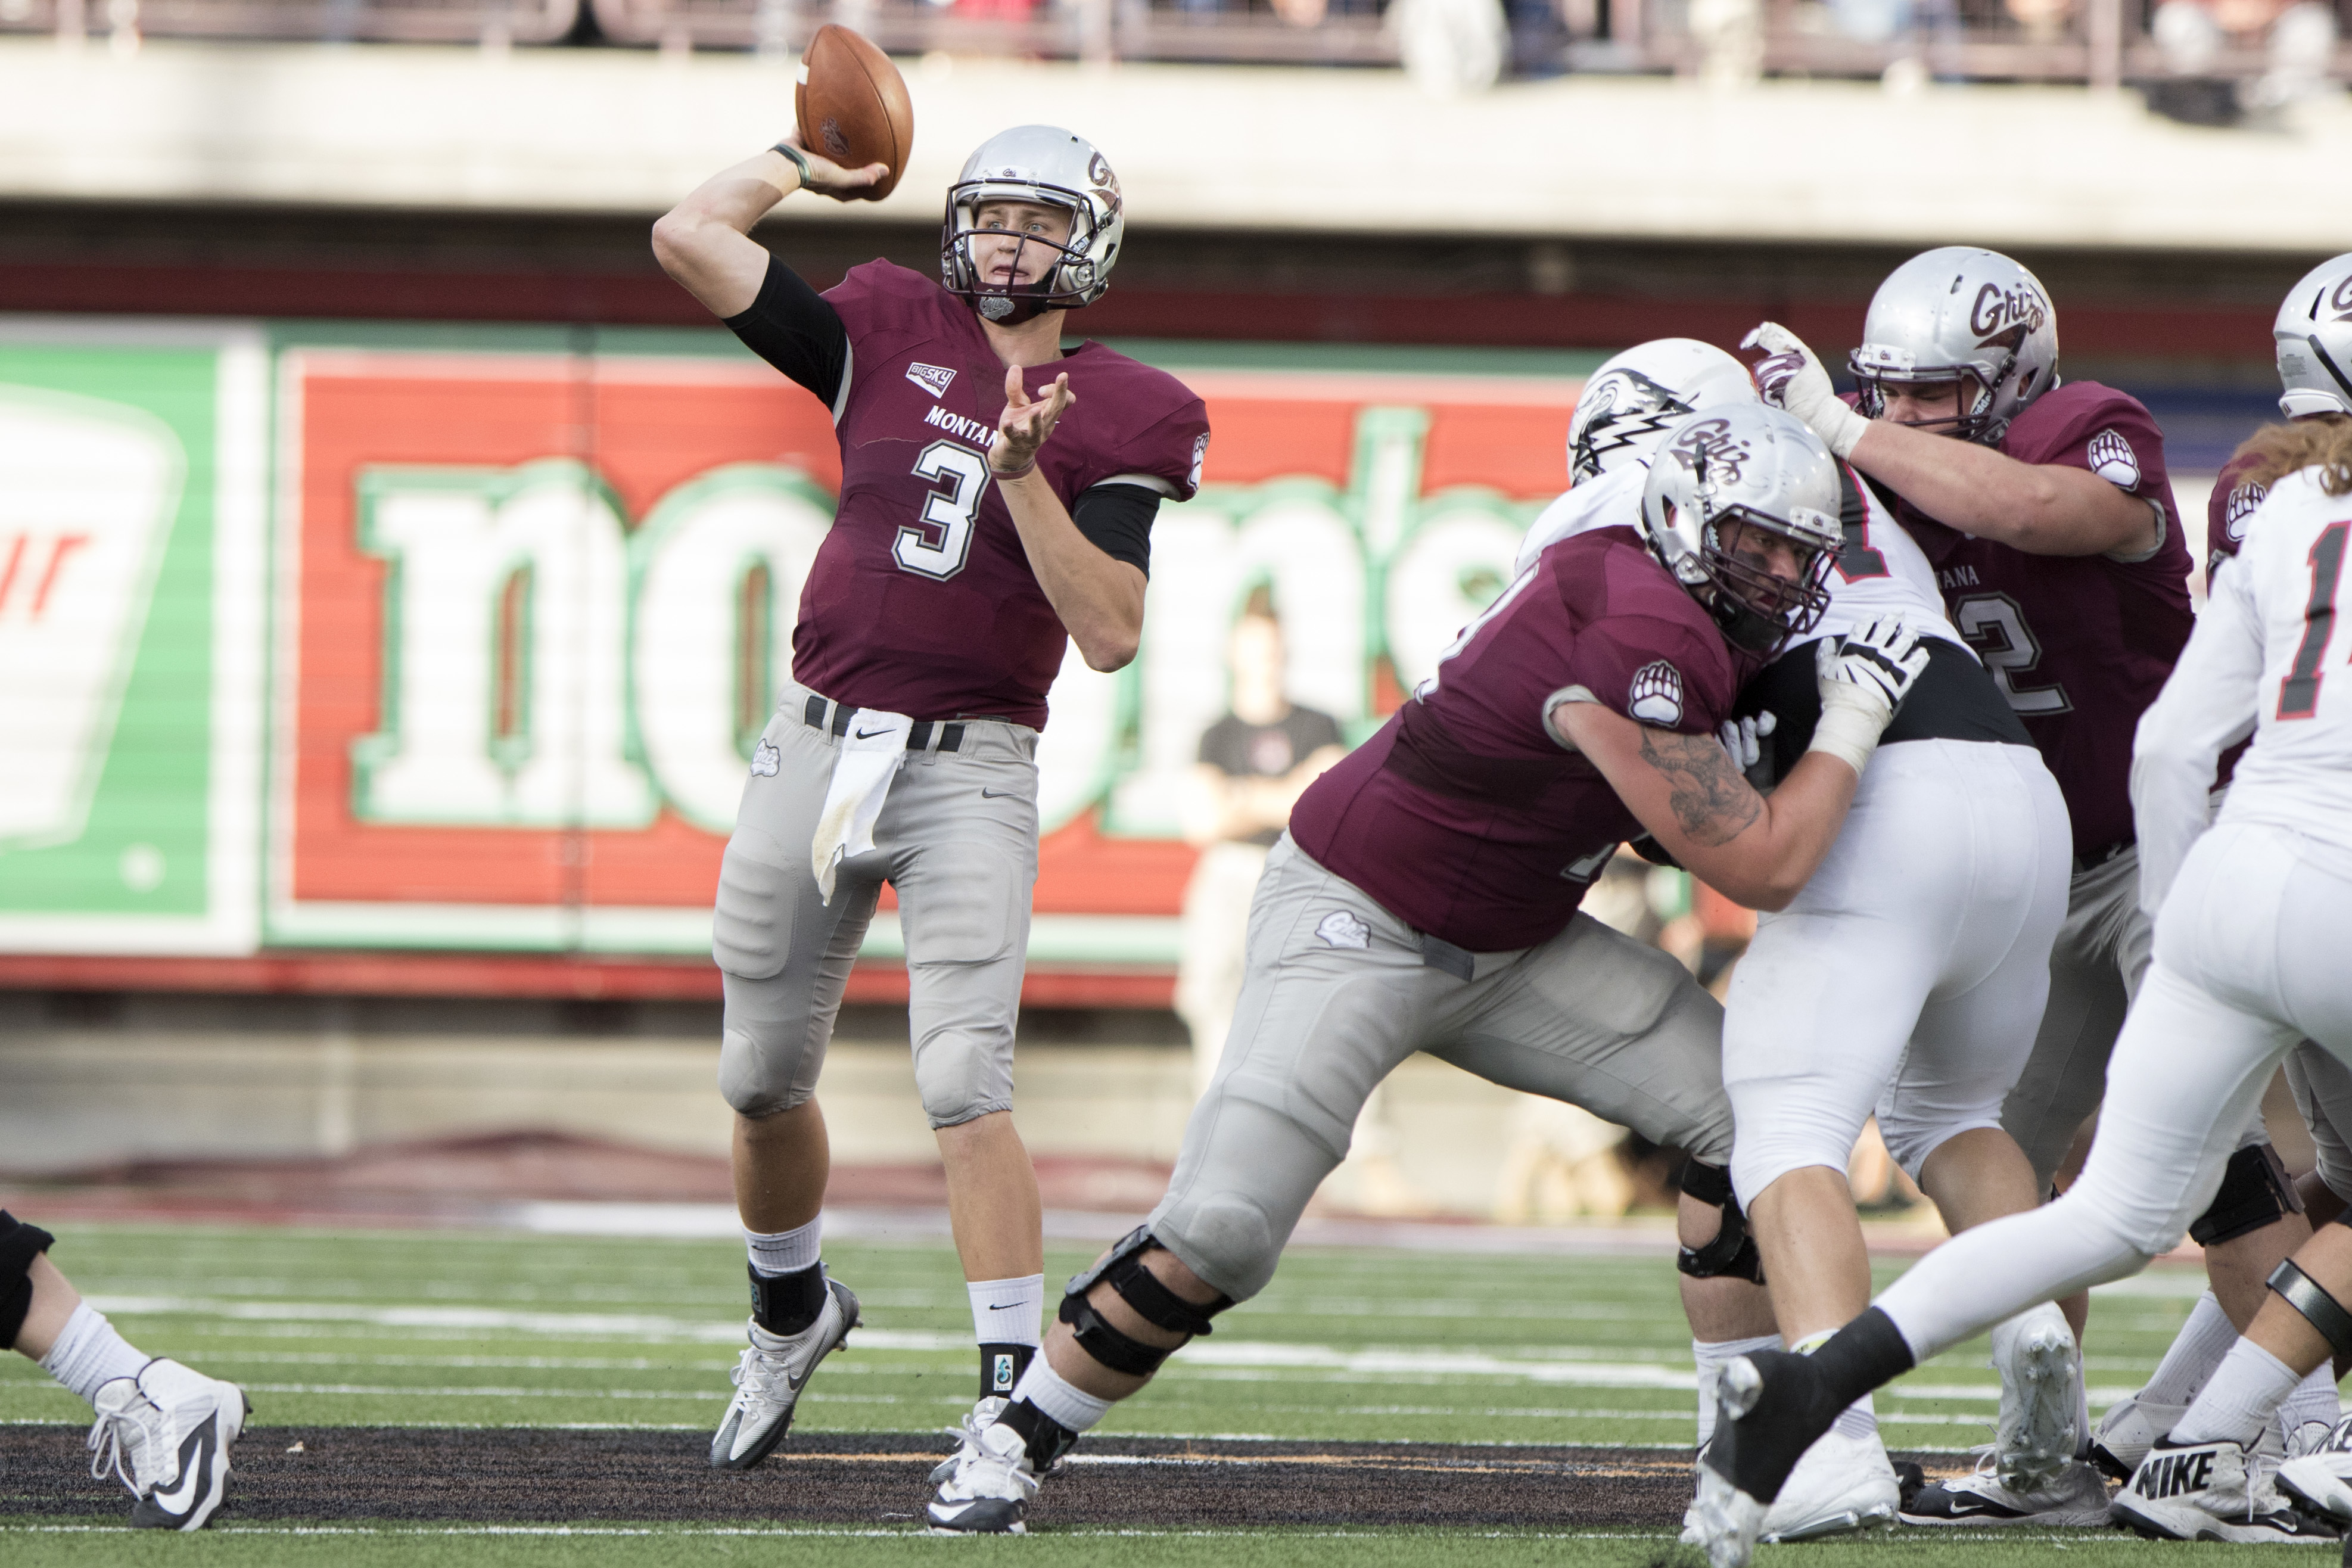 Montana quarterback Brady Gustafson (3) throws a pass against Southern Utah in an NCAA college football game Saturday, Oct. 1, 2016, in Missoula, Mont. Montana defeated Southern Utah, 43-20. (AP Photo/Patrick Record)